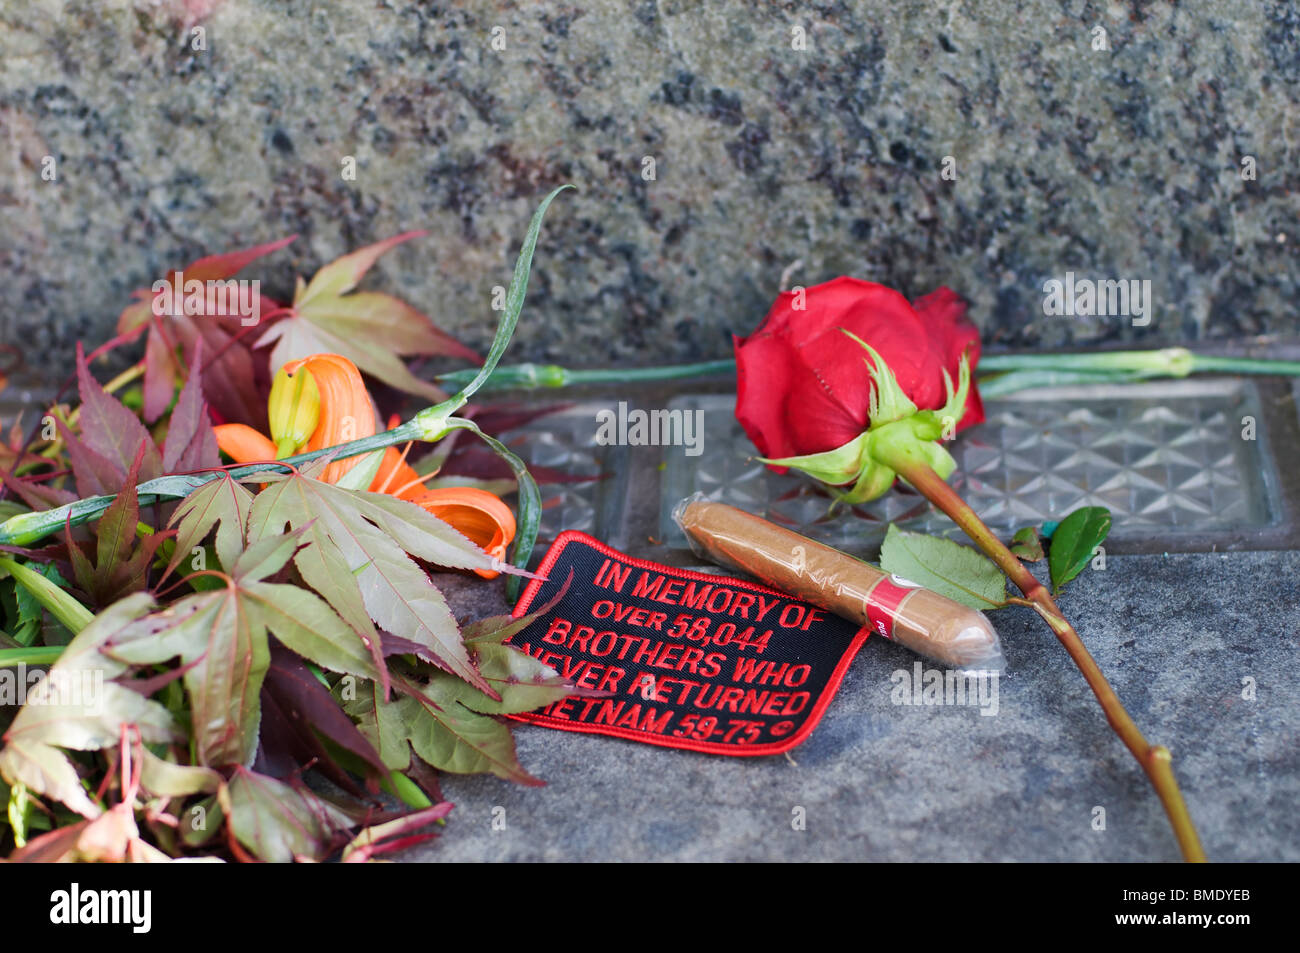 Mementos placed at the Washington State Vietnam Veterans Memorial wall in Olympia, Washington on Memorial Day. - Stock Image